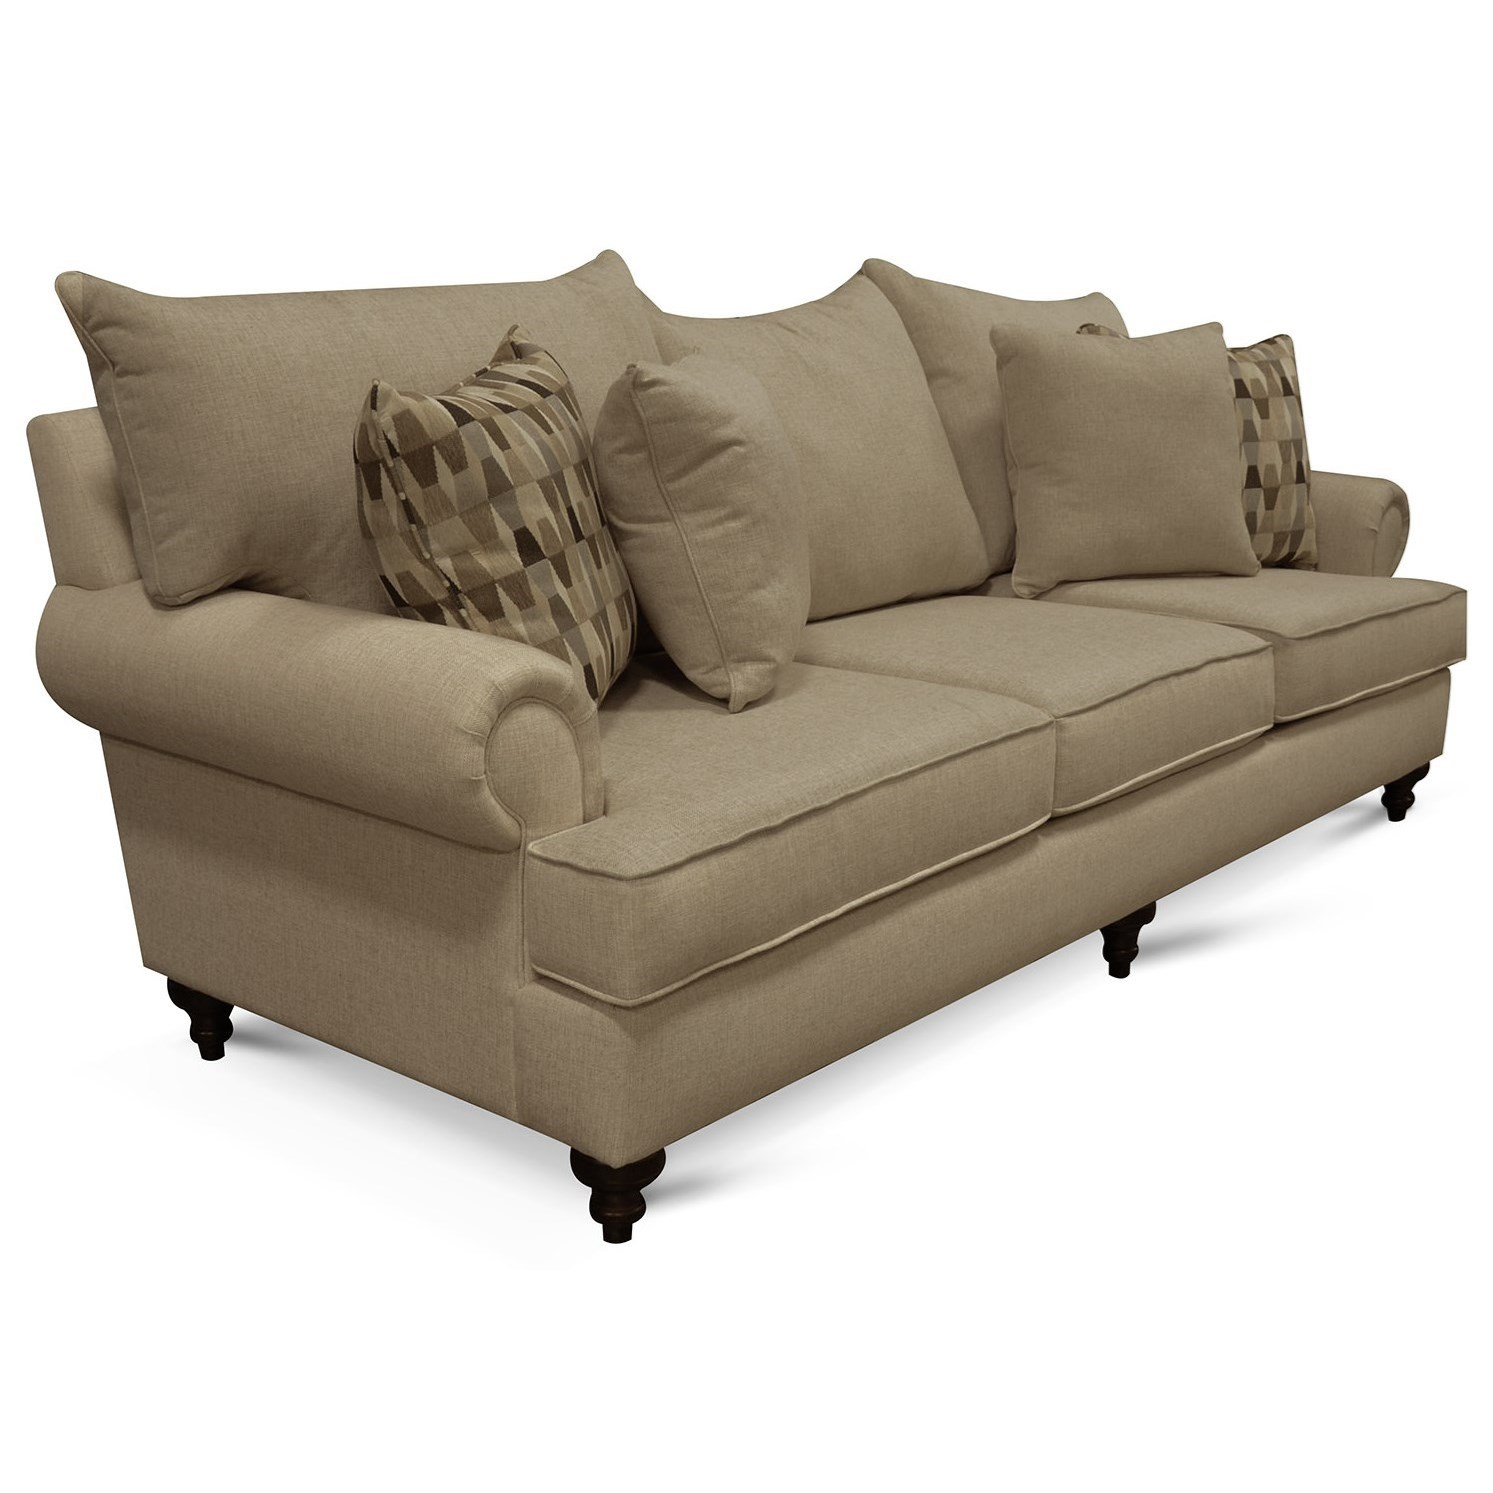 traditional sofa manufacturers uk cane cost in hyderabad england rosalie 4y05 coconis furniture